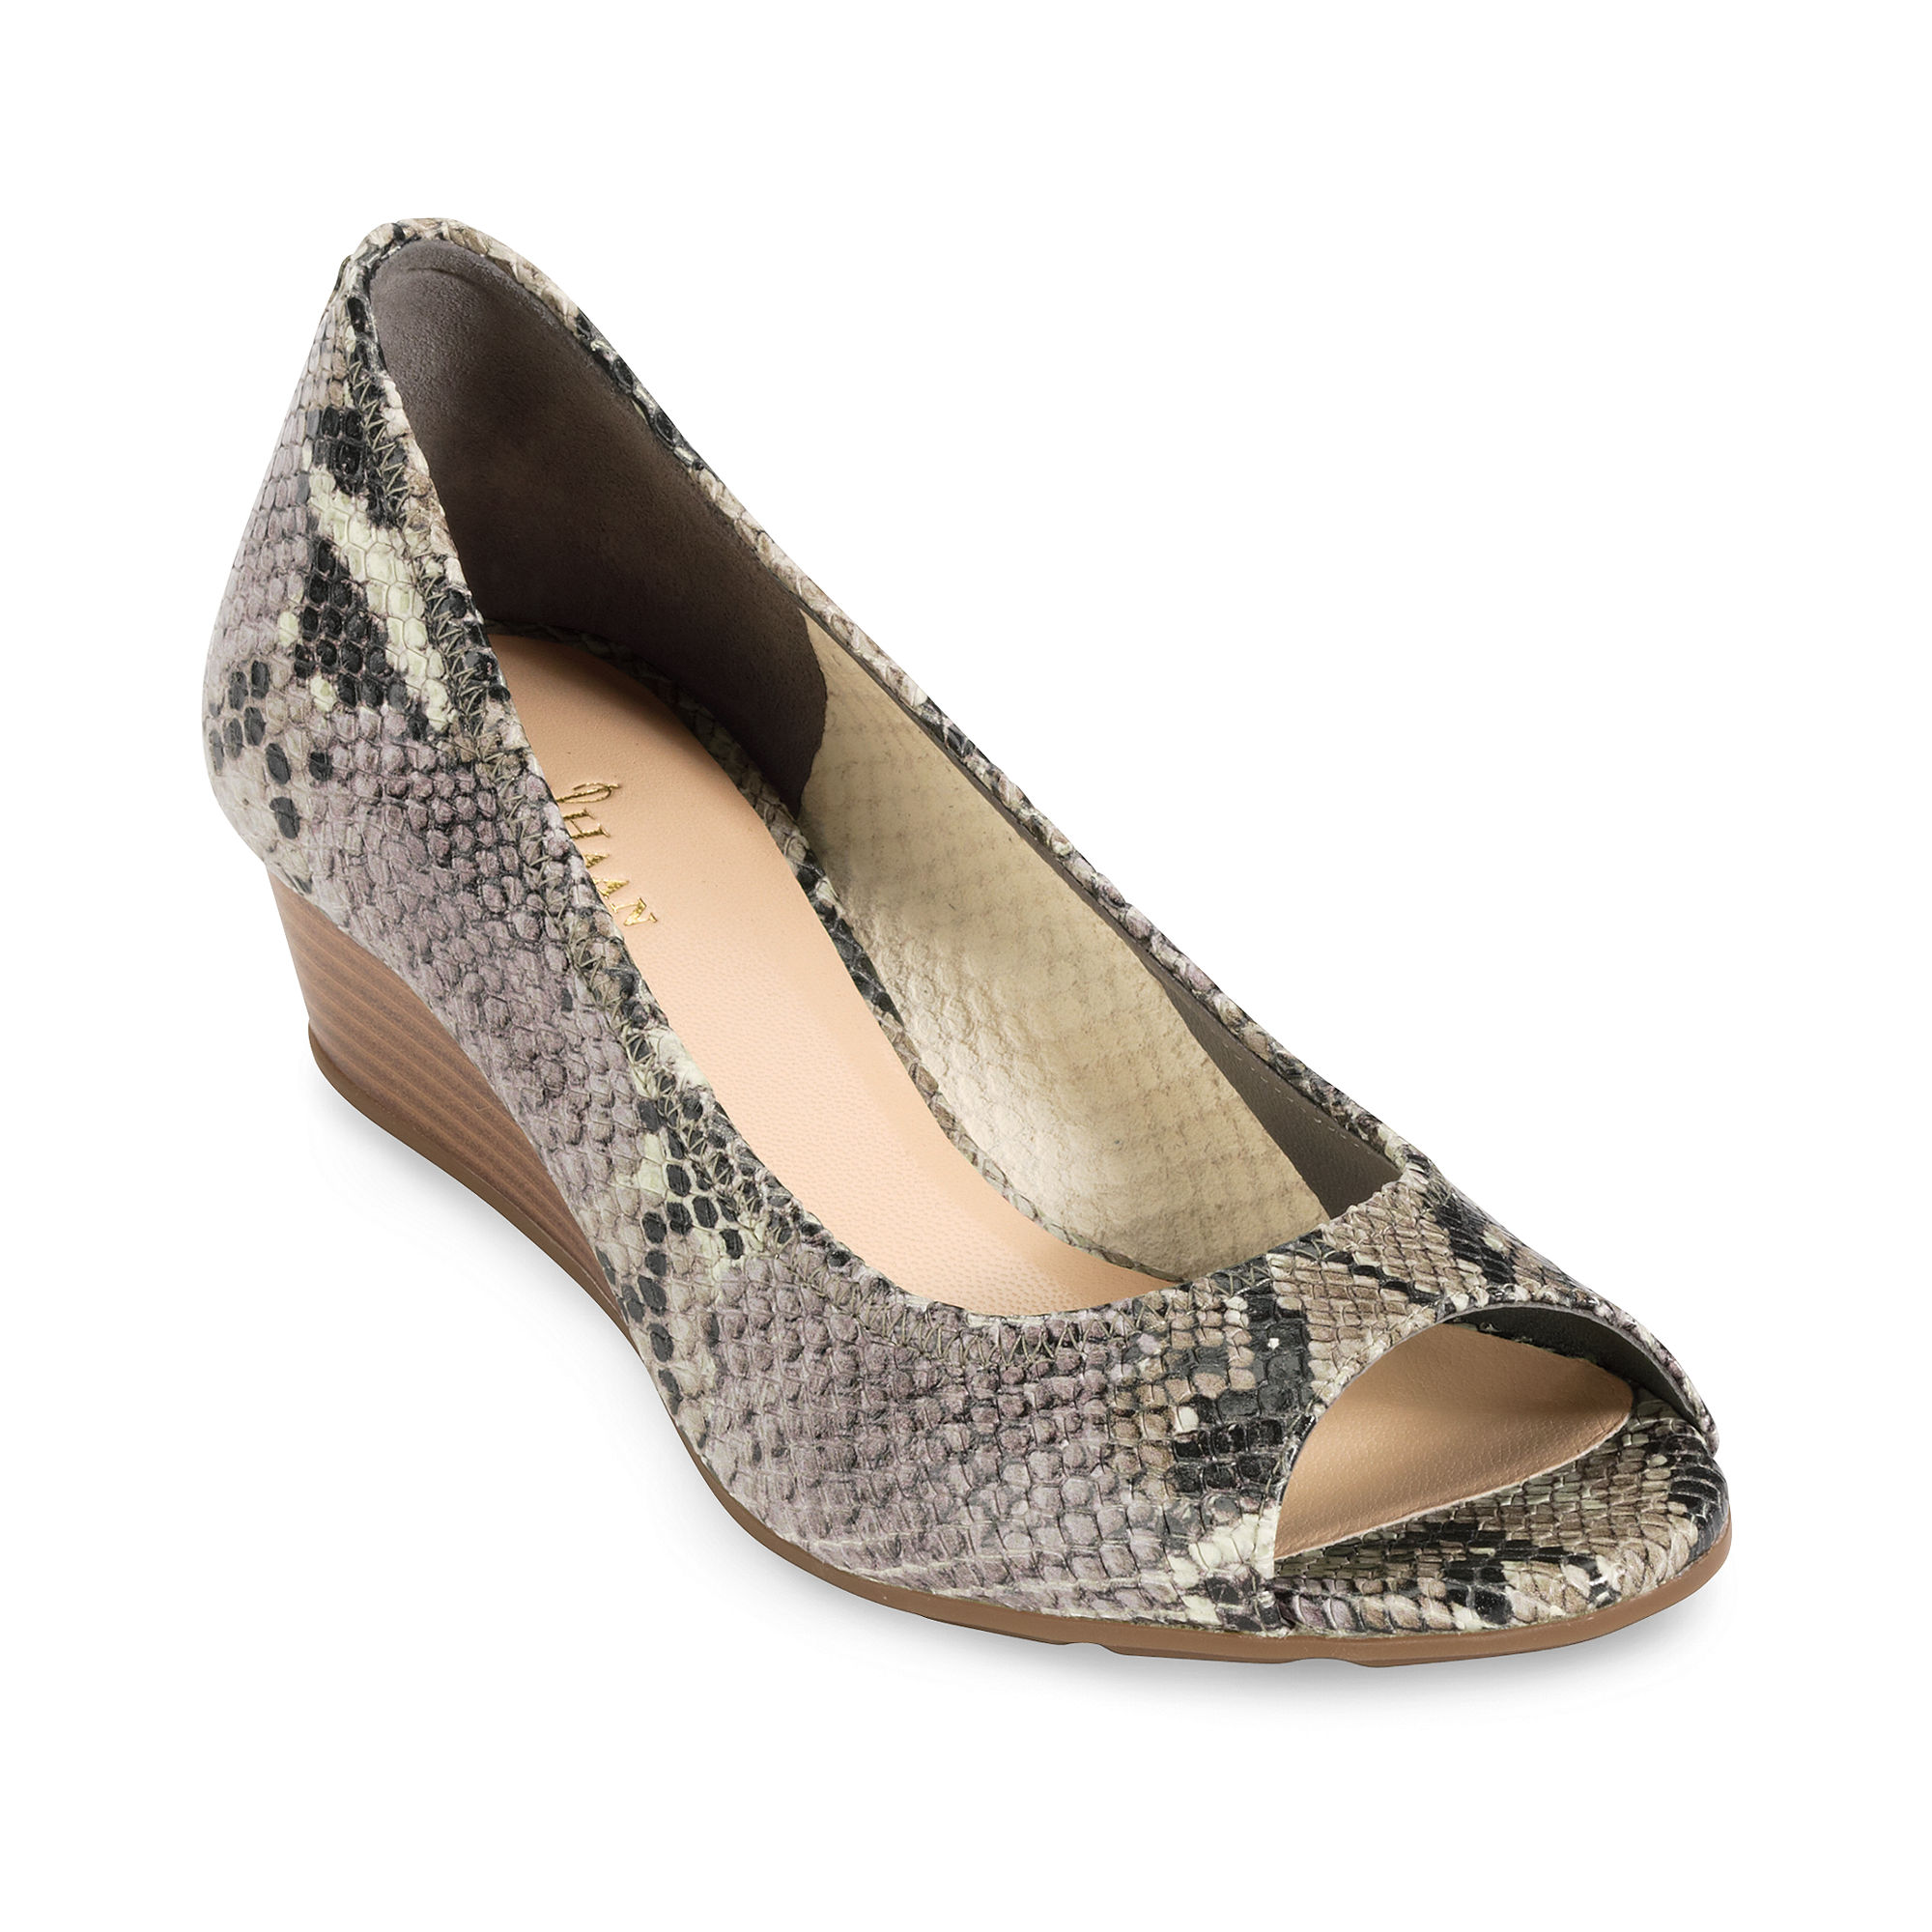 87fe46a99236 Lyst - Cole Haan Air Tali Ot Wedges in Gray